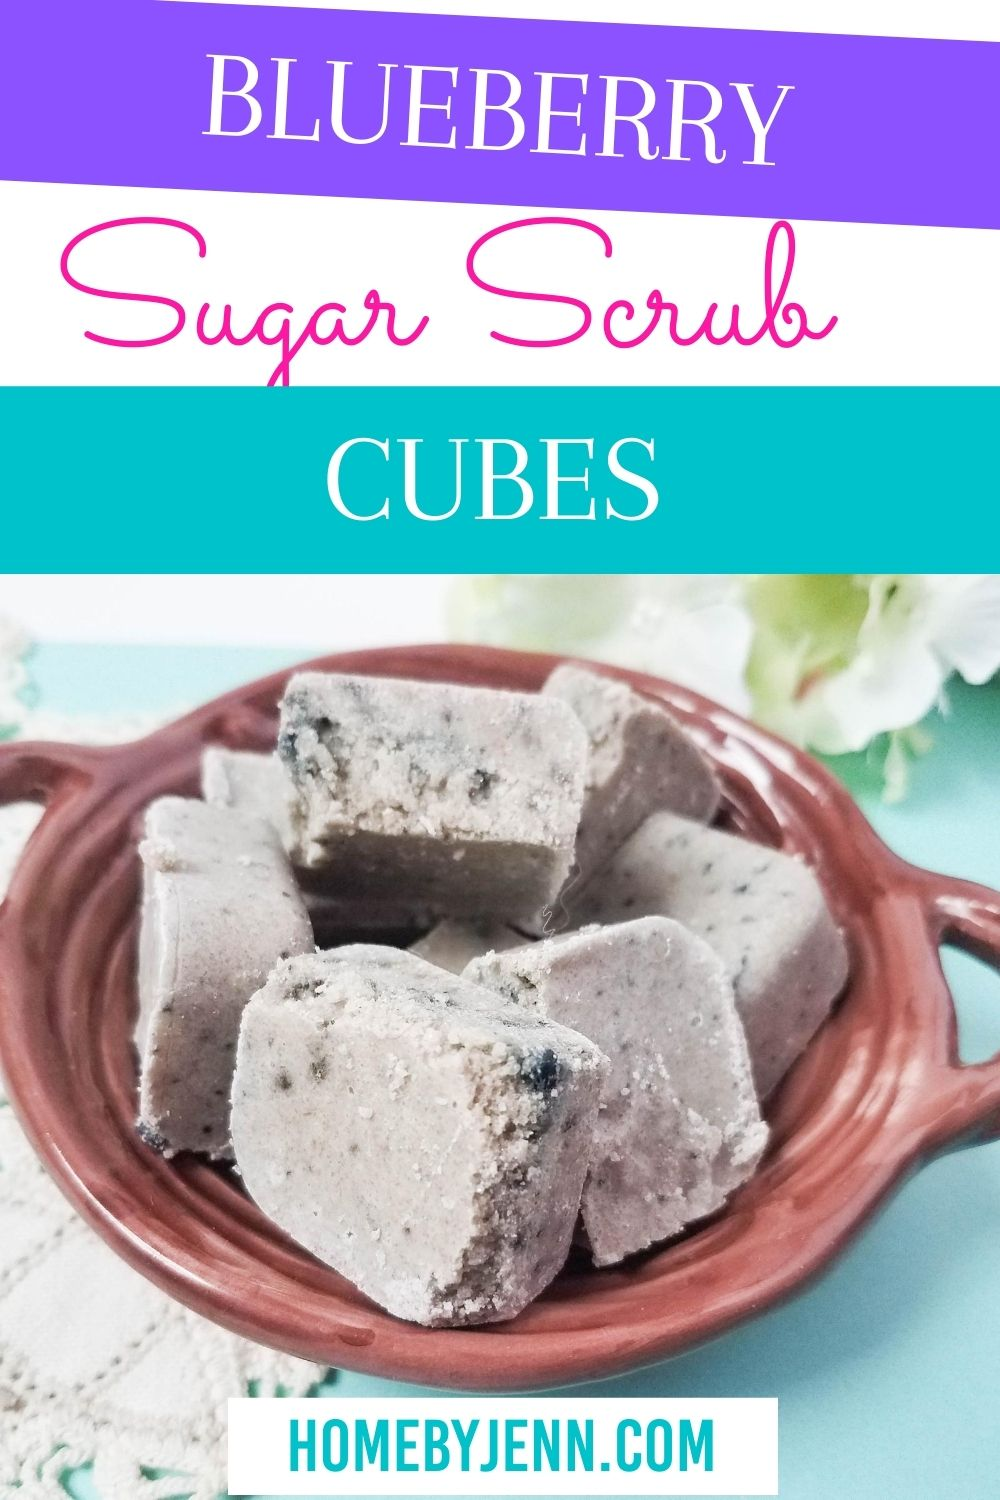 These blueberry sugar scrub cubes are easy to make and are less messy than the regular homemade sugar scrubs. You'll love this easy to follow recipe! The best part? You can make this homemade soap from the comfort of your own home! And you know what every ingredient is going into it as well! #DIY #homemade #beauty #natural #blueberry #sugarscrub via @homebyjenn